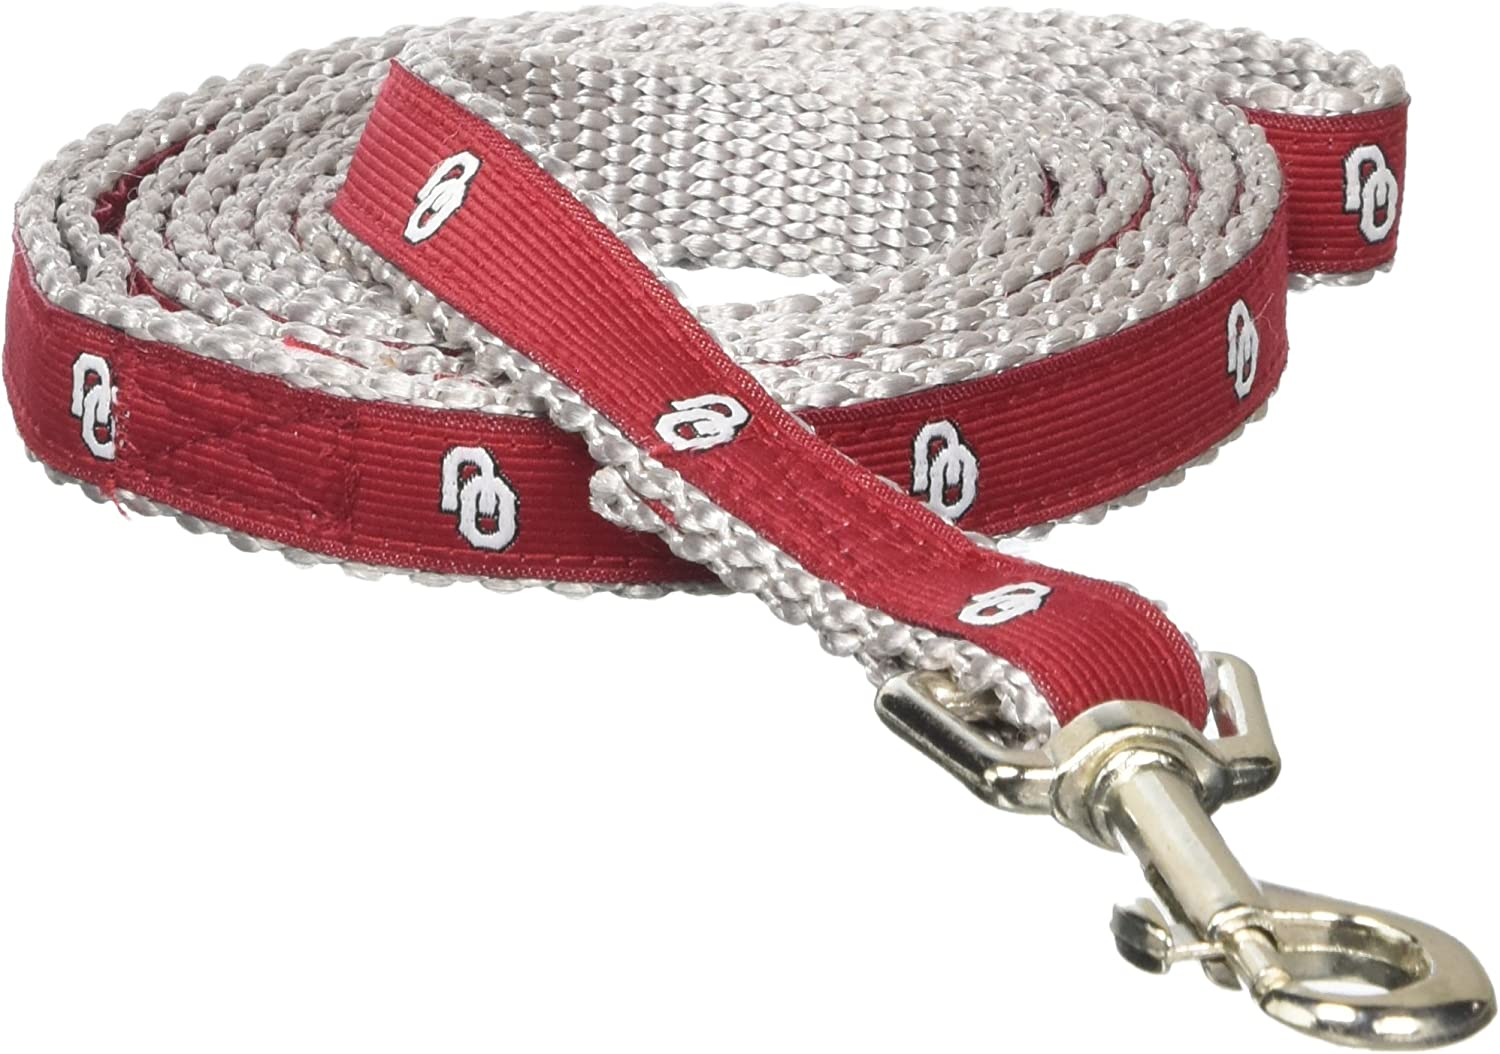 available in 24 SCHOOL TEAMS COLLEGE PET LEASH - Durable SPORTS PET LEASH COLLEGIATE DOG LEASH NCAA DOG LEASH Football//Basketball leashes for DOGS /& CATS